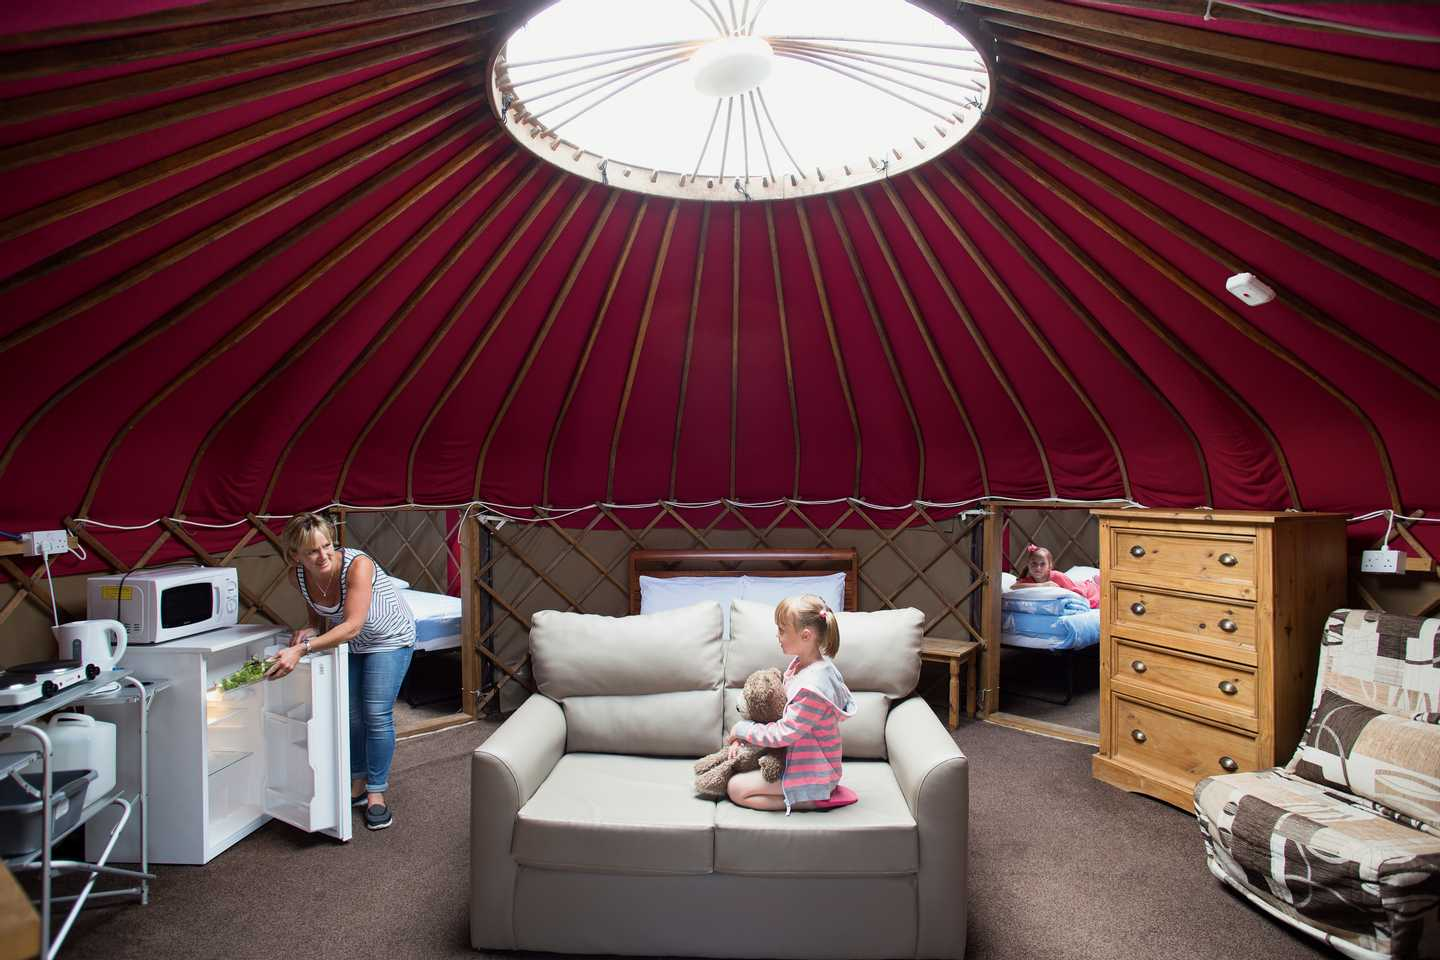 A family in a Yurt with a fridge, microwave, sofa and bedrooms